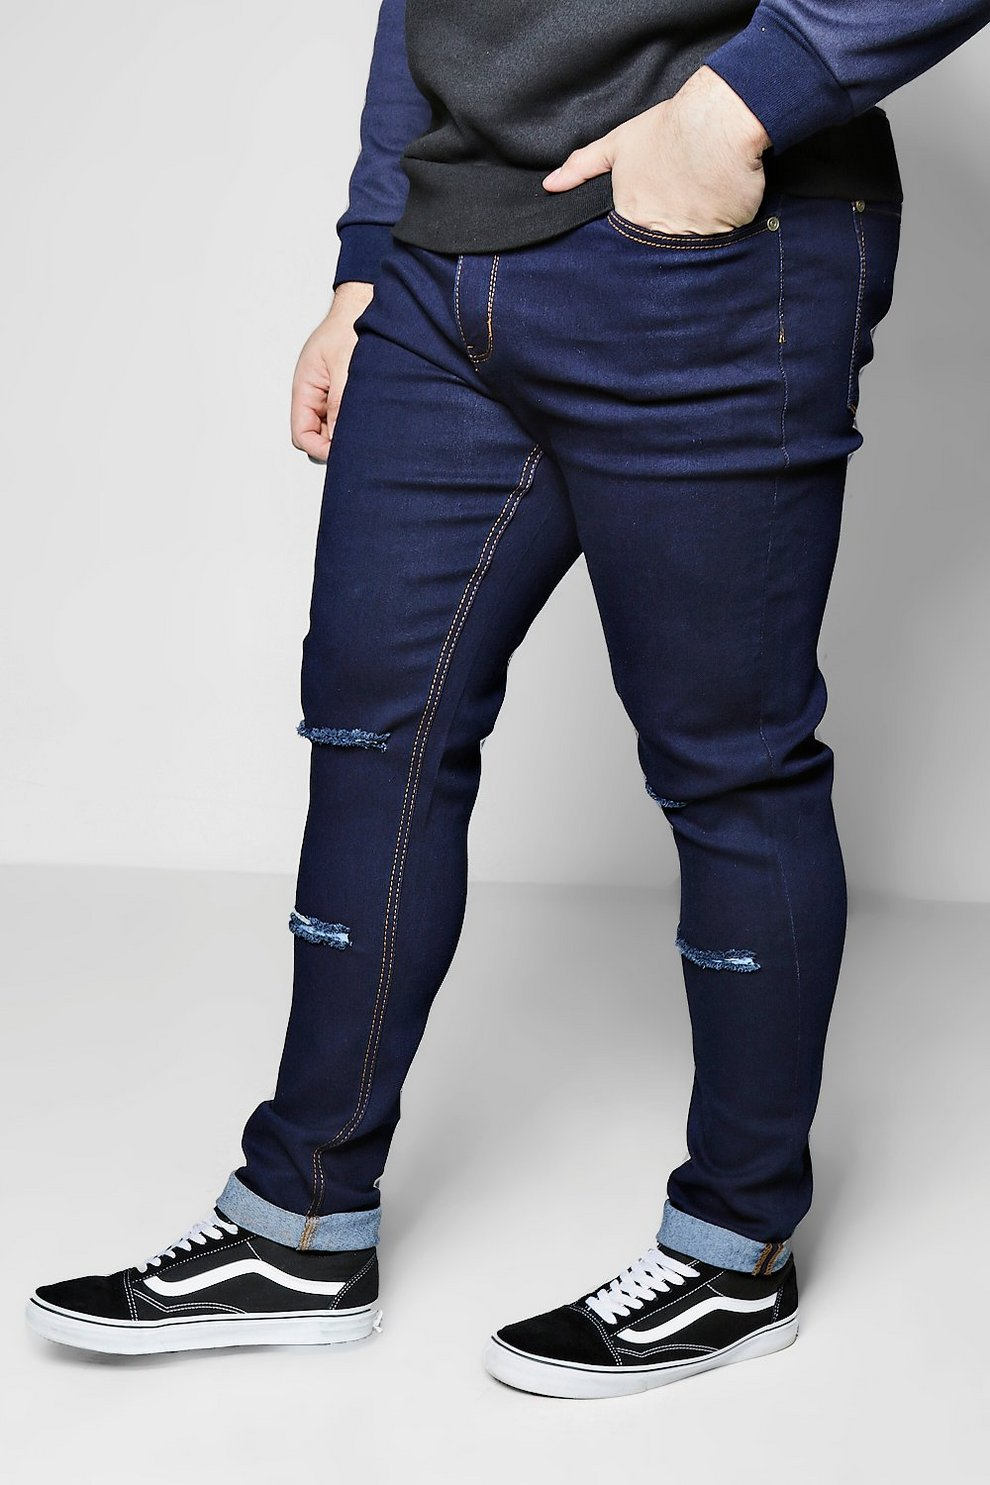 Boohoo Big And Tall Skinny Fit Double Rip Knee Jeans Pre Order Online Really For Sale Under 70 Dollars Shopping Online Outlet Sale Discount Marketable CuSsc